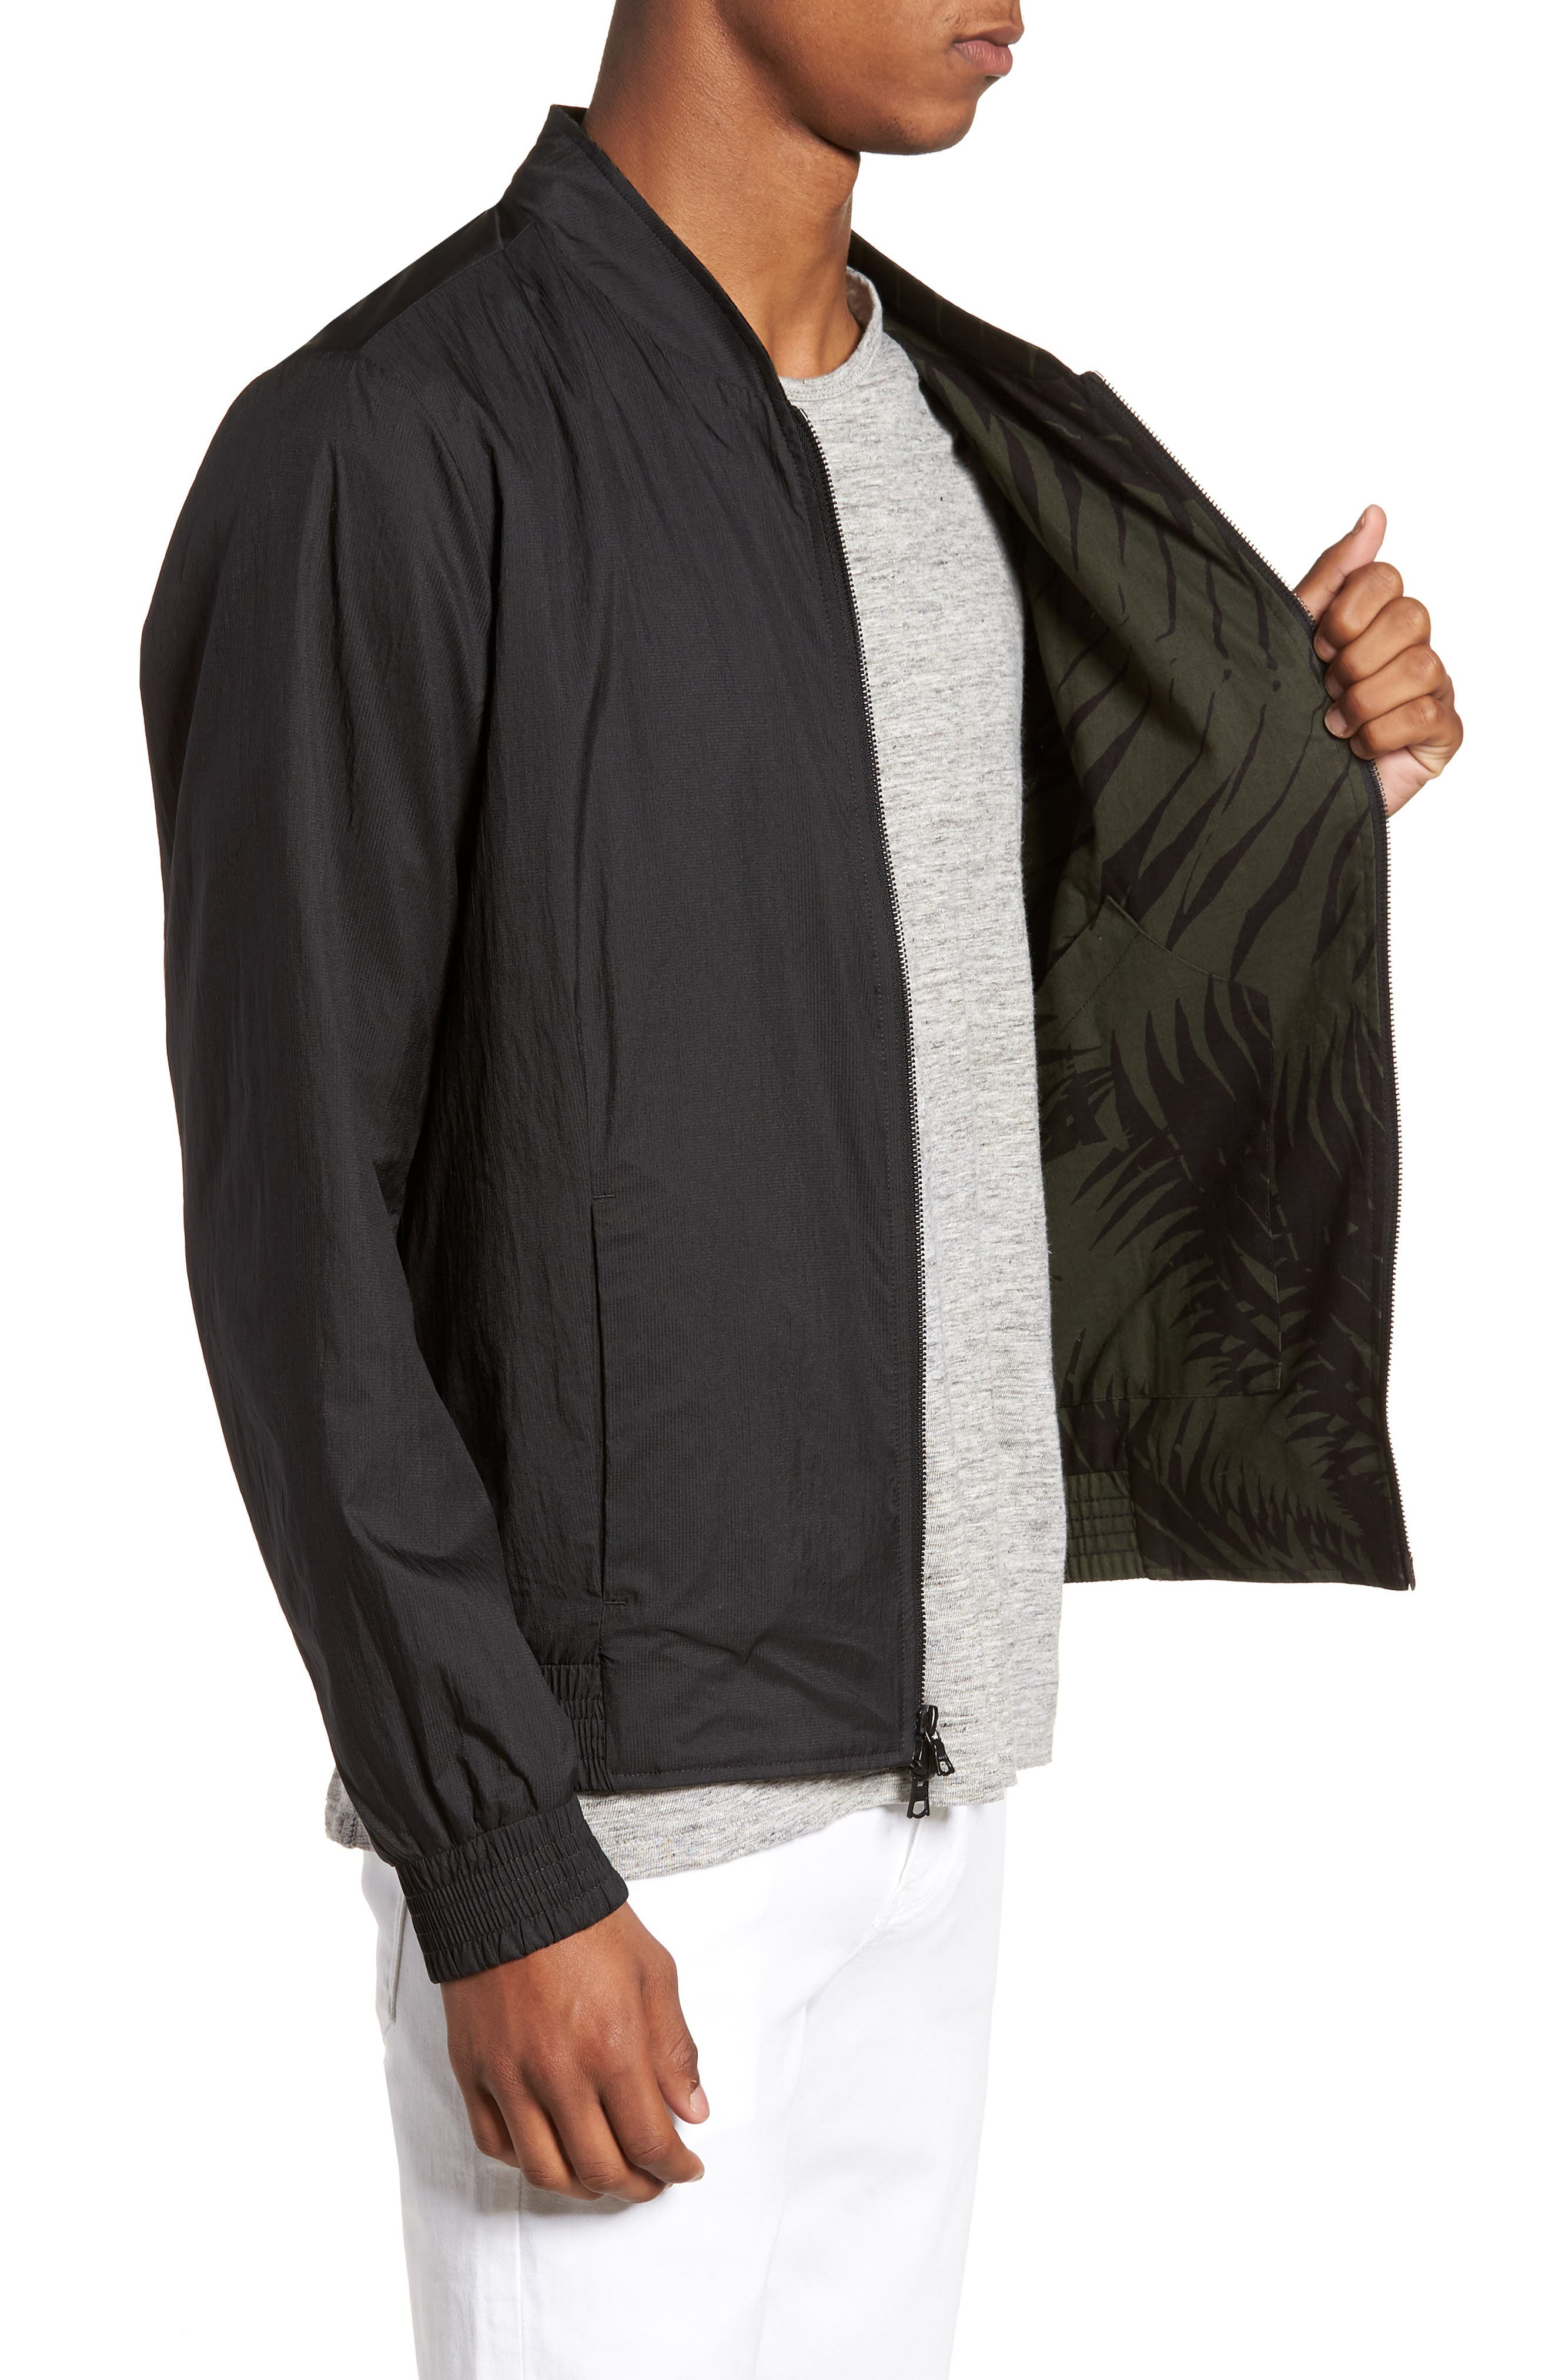 Reversible Bomber Jacket,                             Alternate thumbnail 4, color,                             Black/ Jungle Green